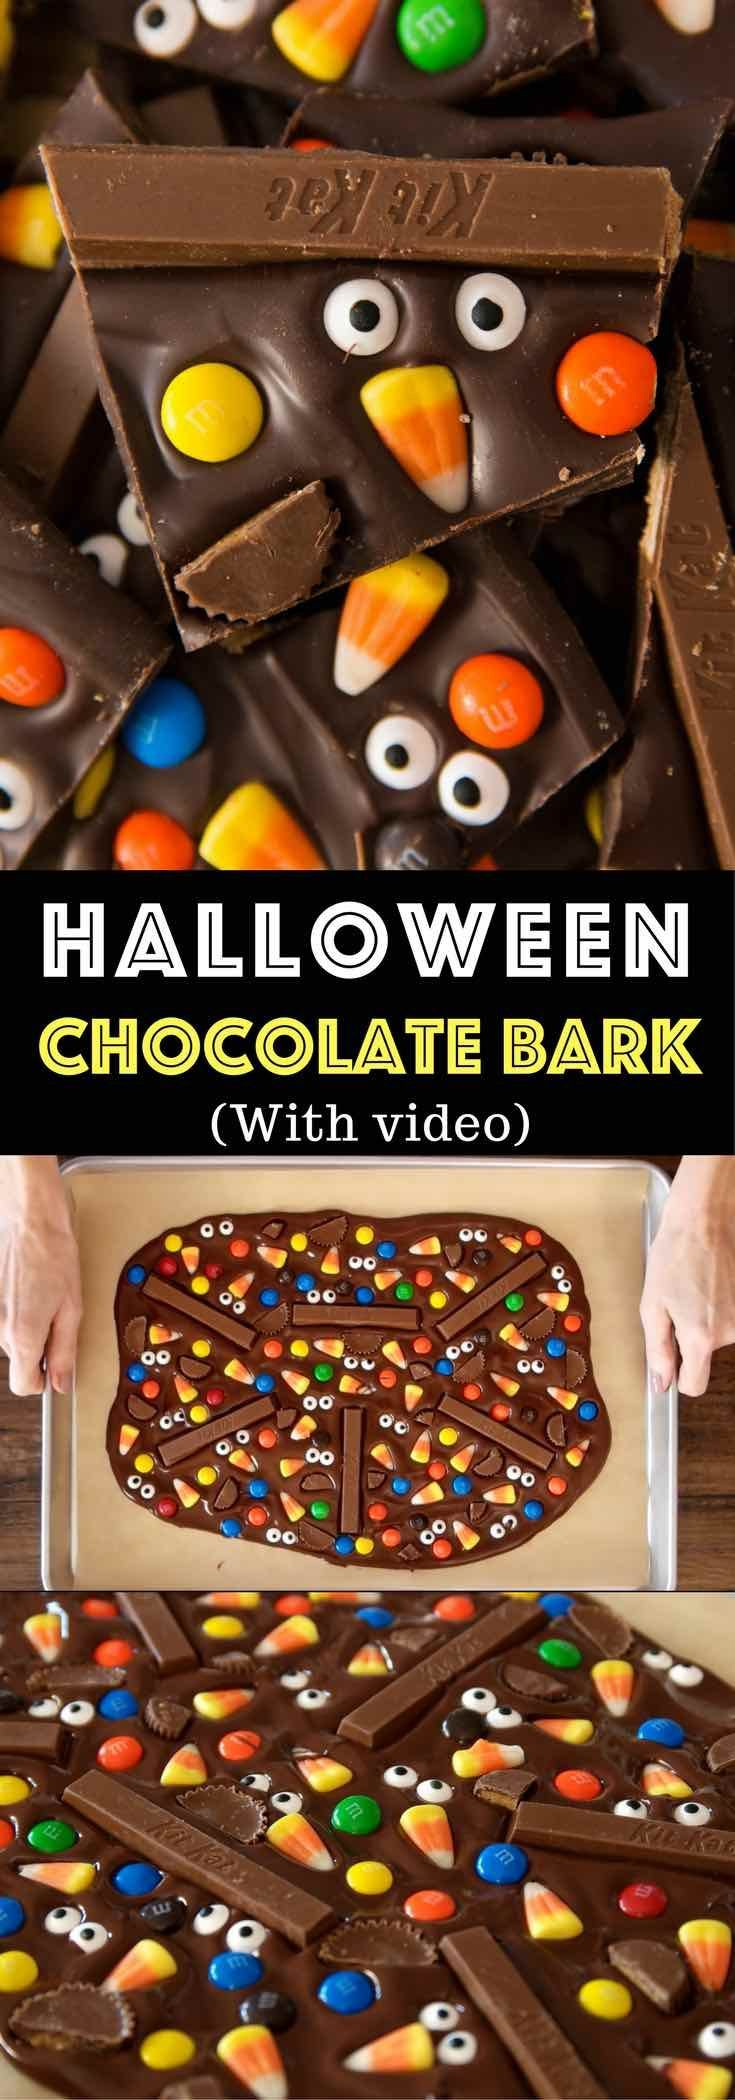 Fun and delicious Halloween Chocolate Bark is one of the easiest Halloween recipes. Melt chocolate and add your favorite candy such as Kit Kat, M&Ms, Peanut Butter Cups and candy corns. It makes a perfect party treat. Fun recipe to make with kids. Dessert, Party Food. Vegetarian. Fun and yummy Halloween recipe. Video recipe. | Tipbuzz.com